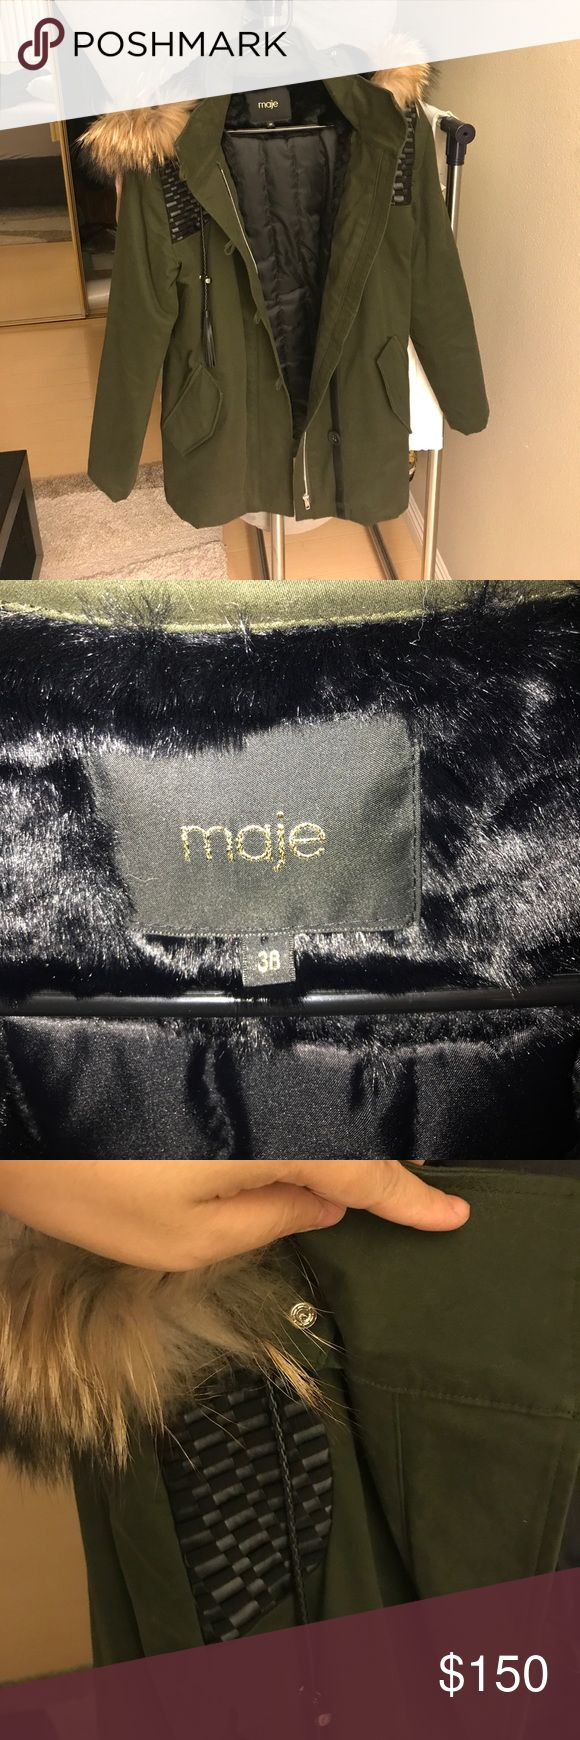 Maje army green parka fur jacket size 38 M Parka with braided details GOVE. Crafted in cotton canvas, the parka is adorned with contrasting woven yokes at the shoulders. It features a high collar, slit flap pockets and a wide fur-trimmed hood embellished with a tasselled cord. It has a zip fastening hidden under a button placket at the front. The piece also sports a removable real animal fur and quilted fabric lining. Combining style and comfort, the parka will keep you warm all season long…